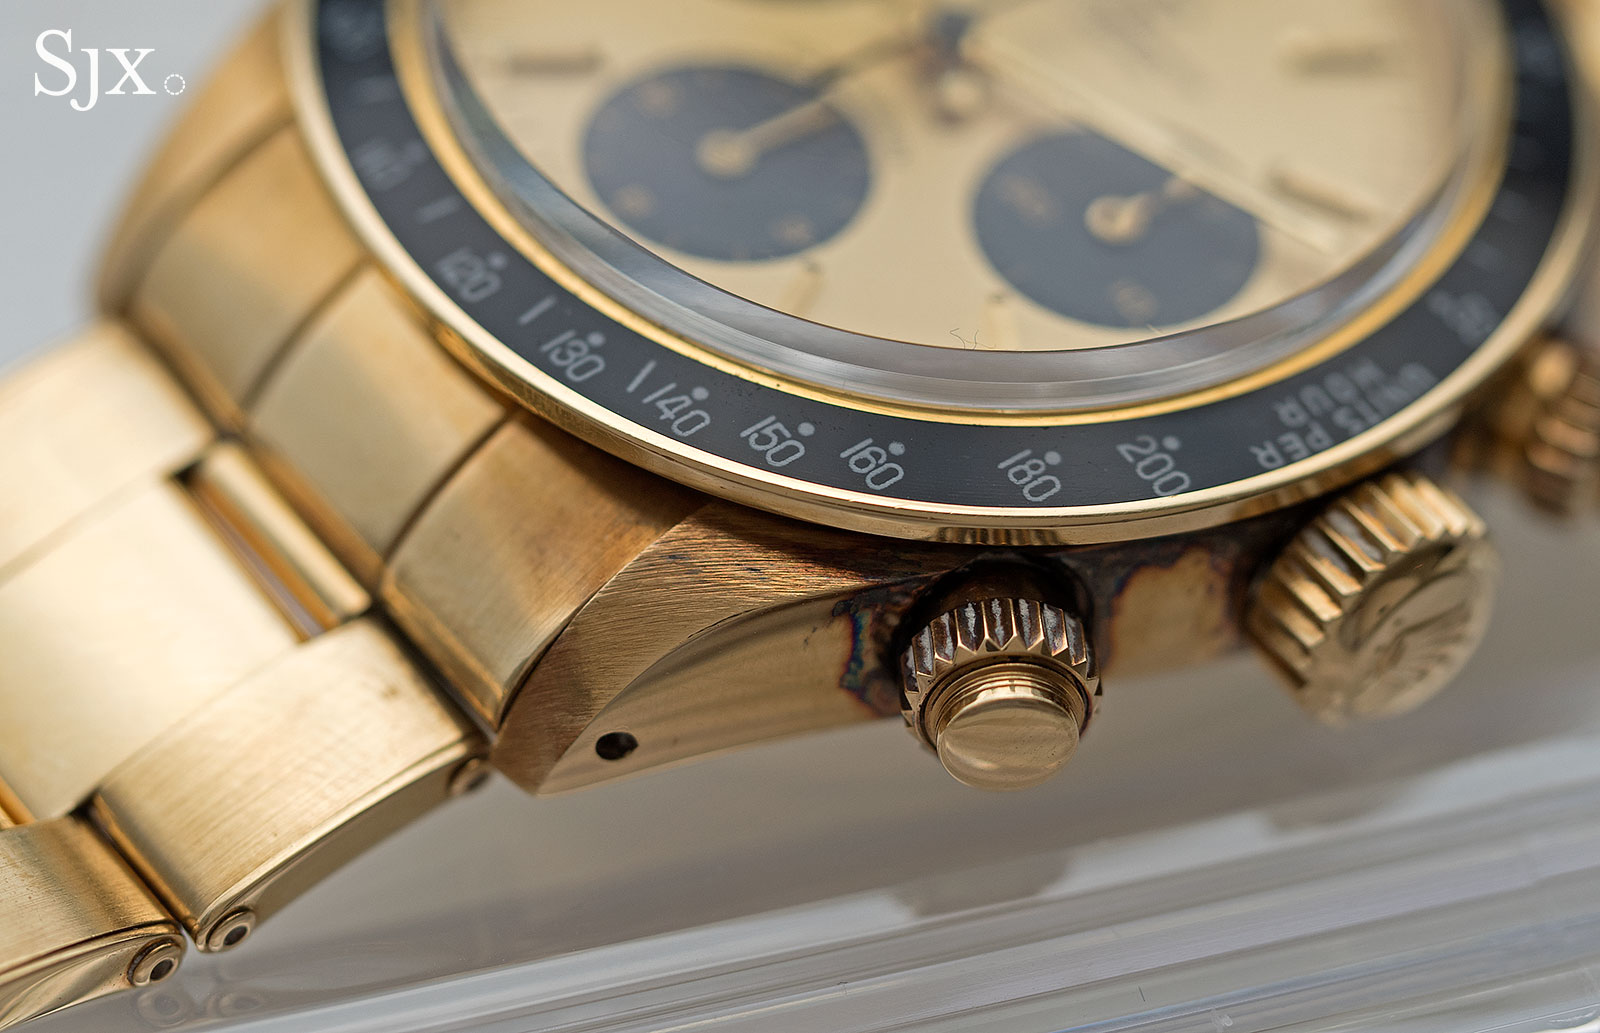 Rolex Daytona 6265 yellow gold 3